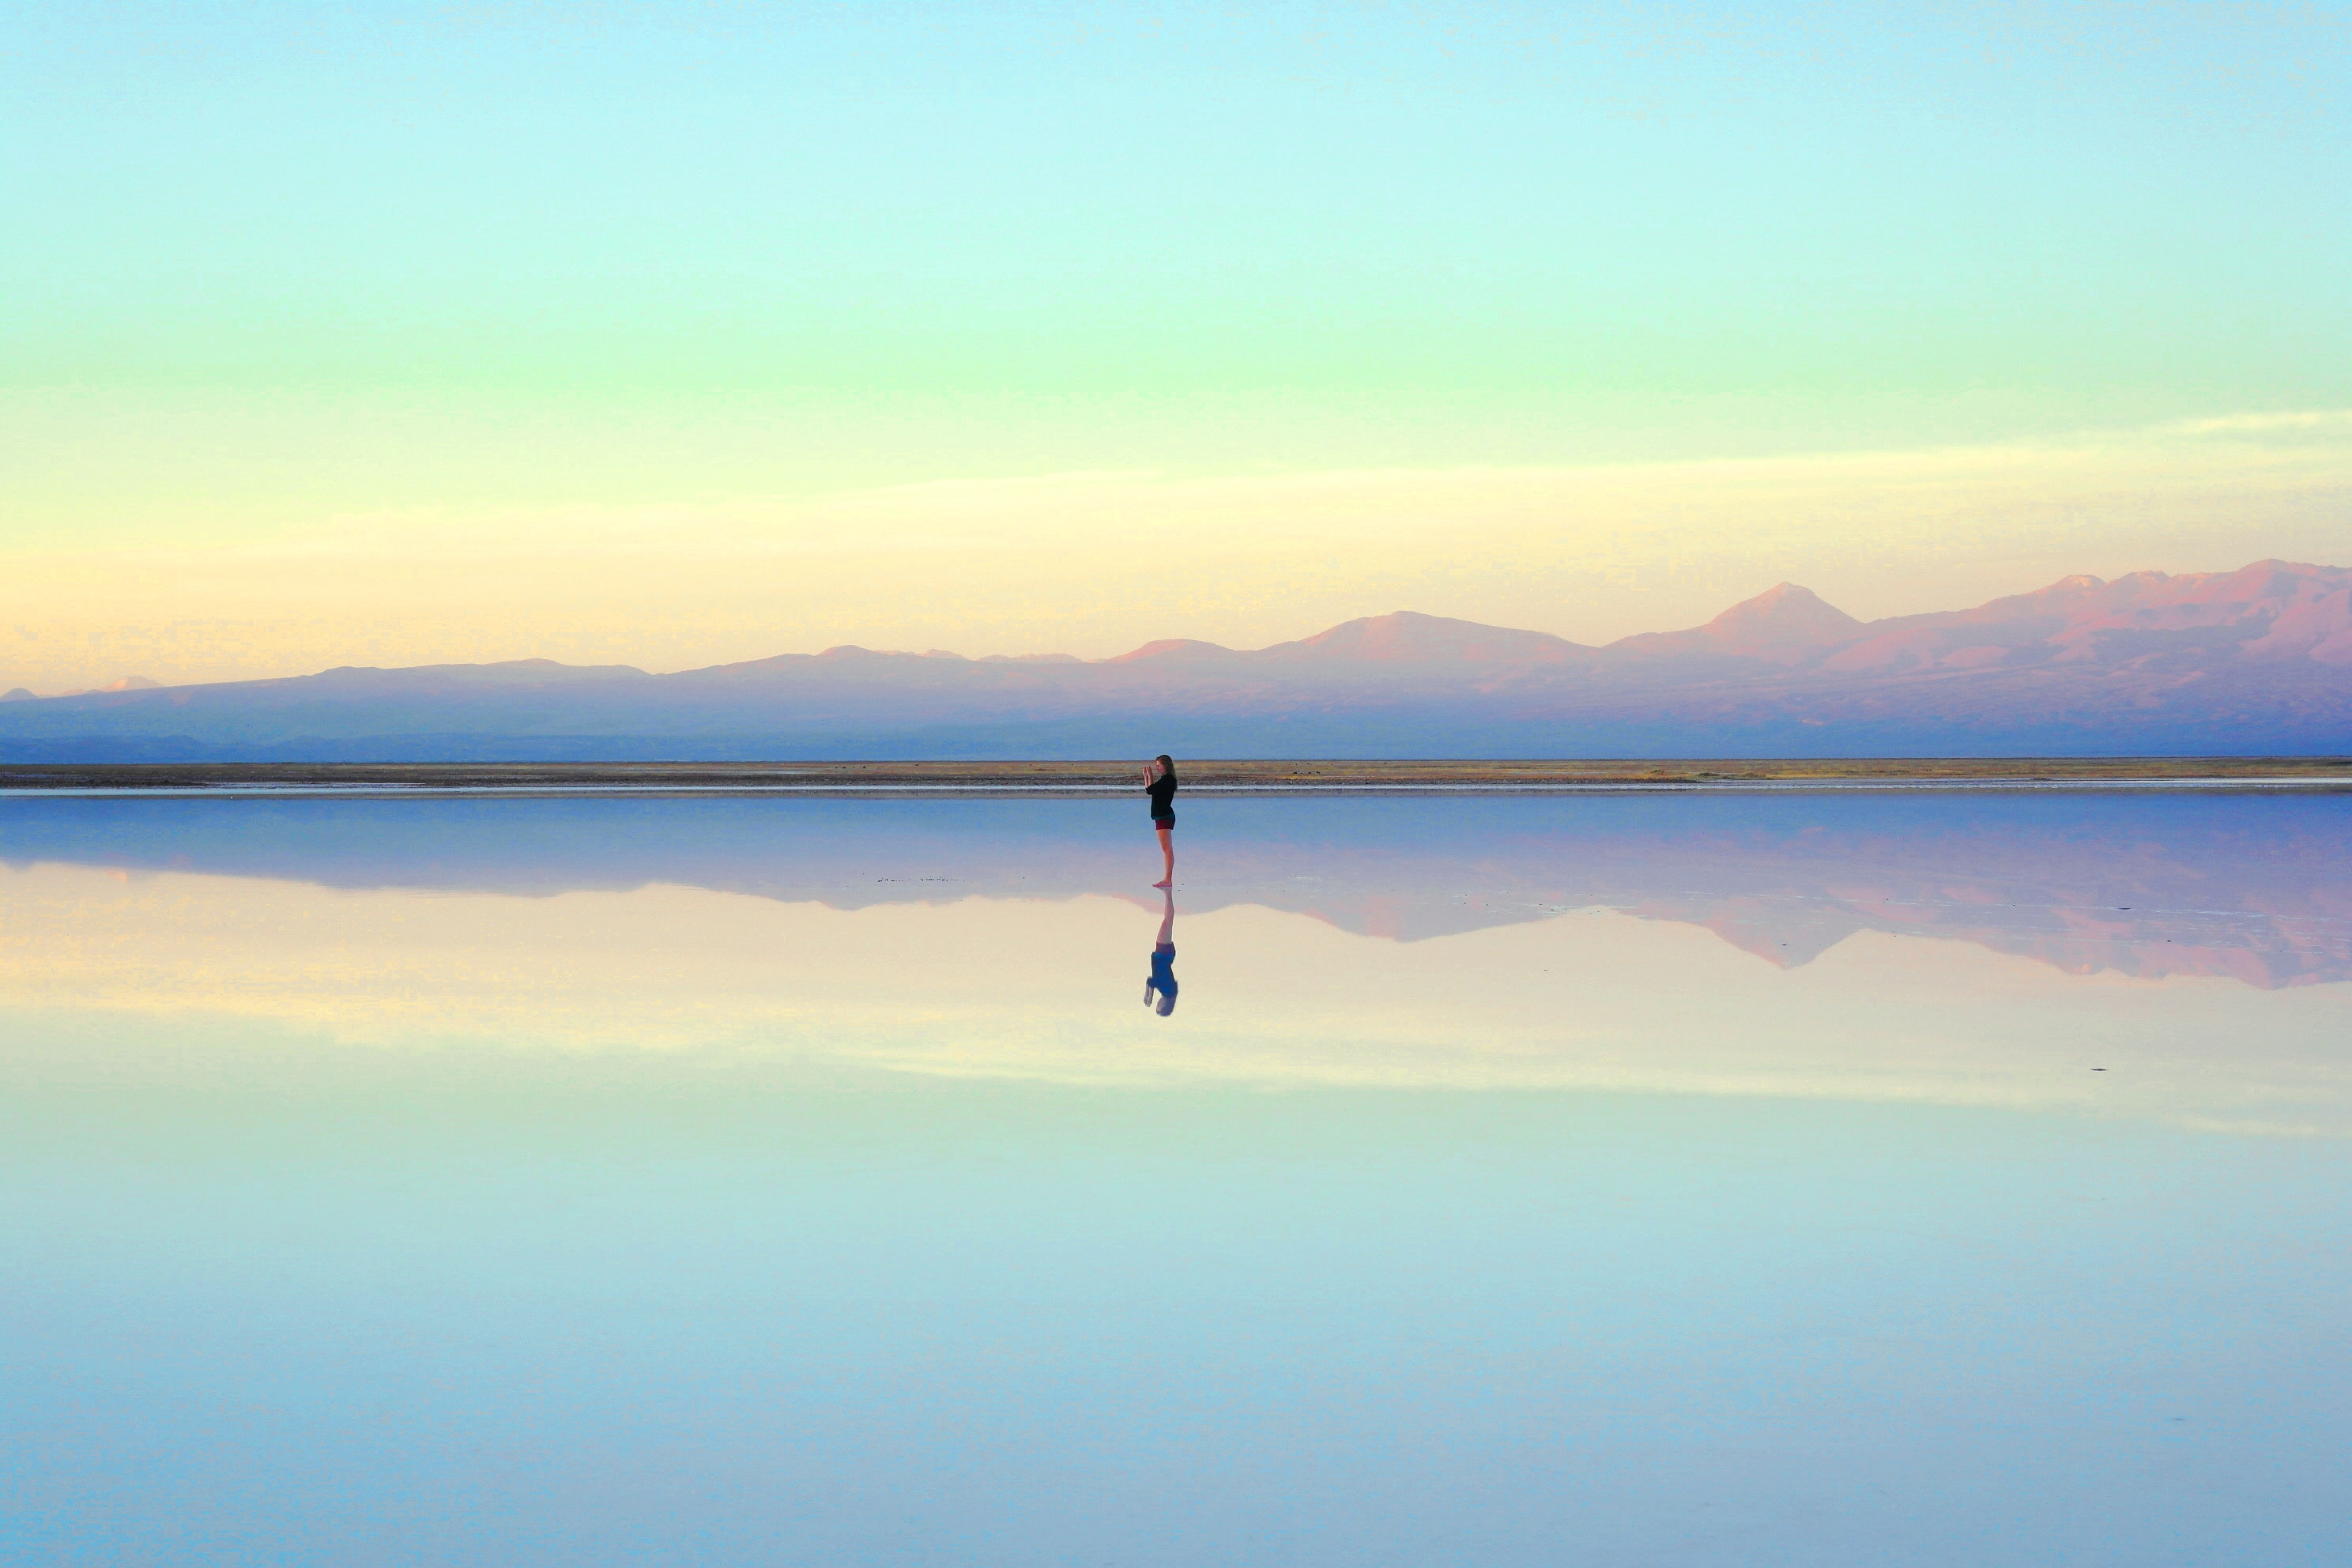 An optic illusion featuring a woman standing on the mirror-like surface of pale blue water